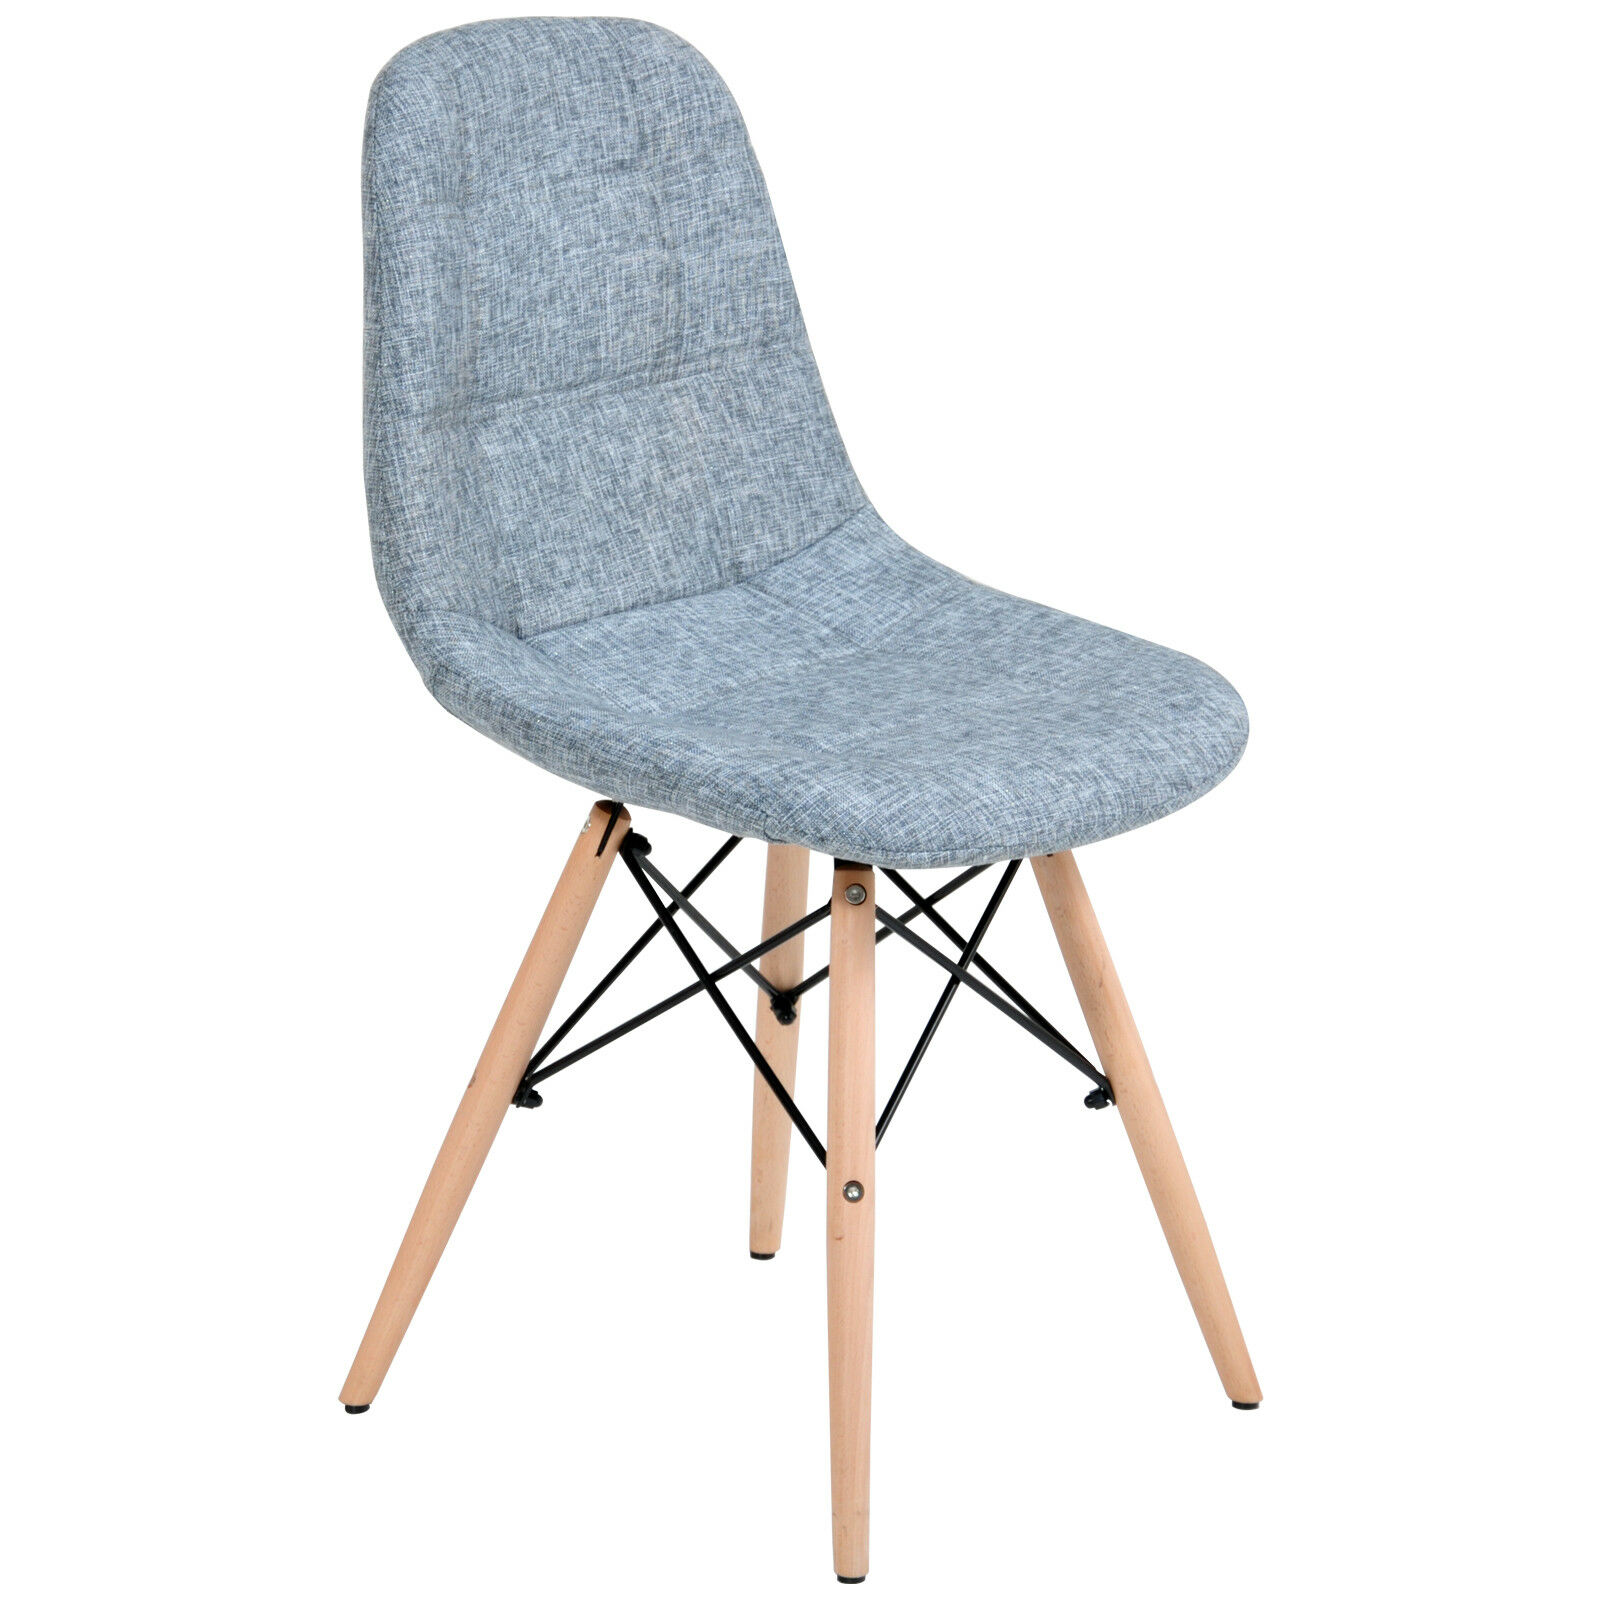 12 X Retro Replica Eames Chick Dsw Dining Chairs Office  : Eames Ellen Grey 01 from www.50han.com size 1600 x 1600 jpeg 572kB